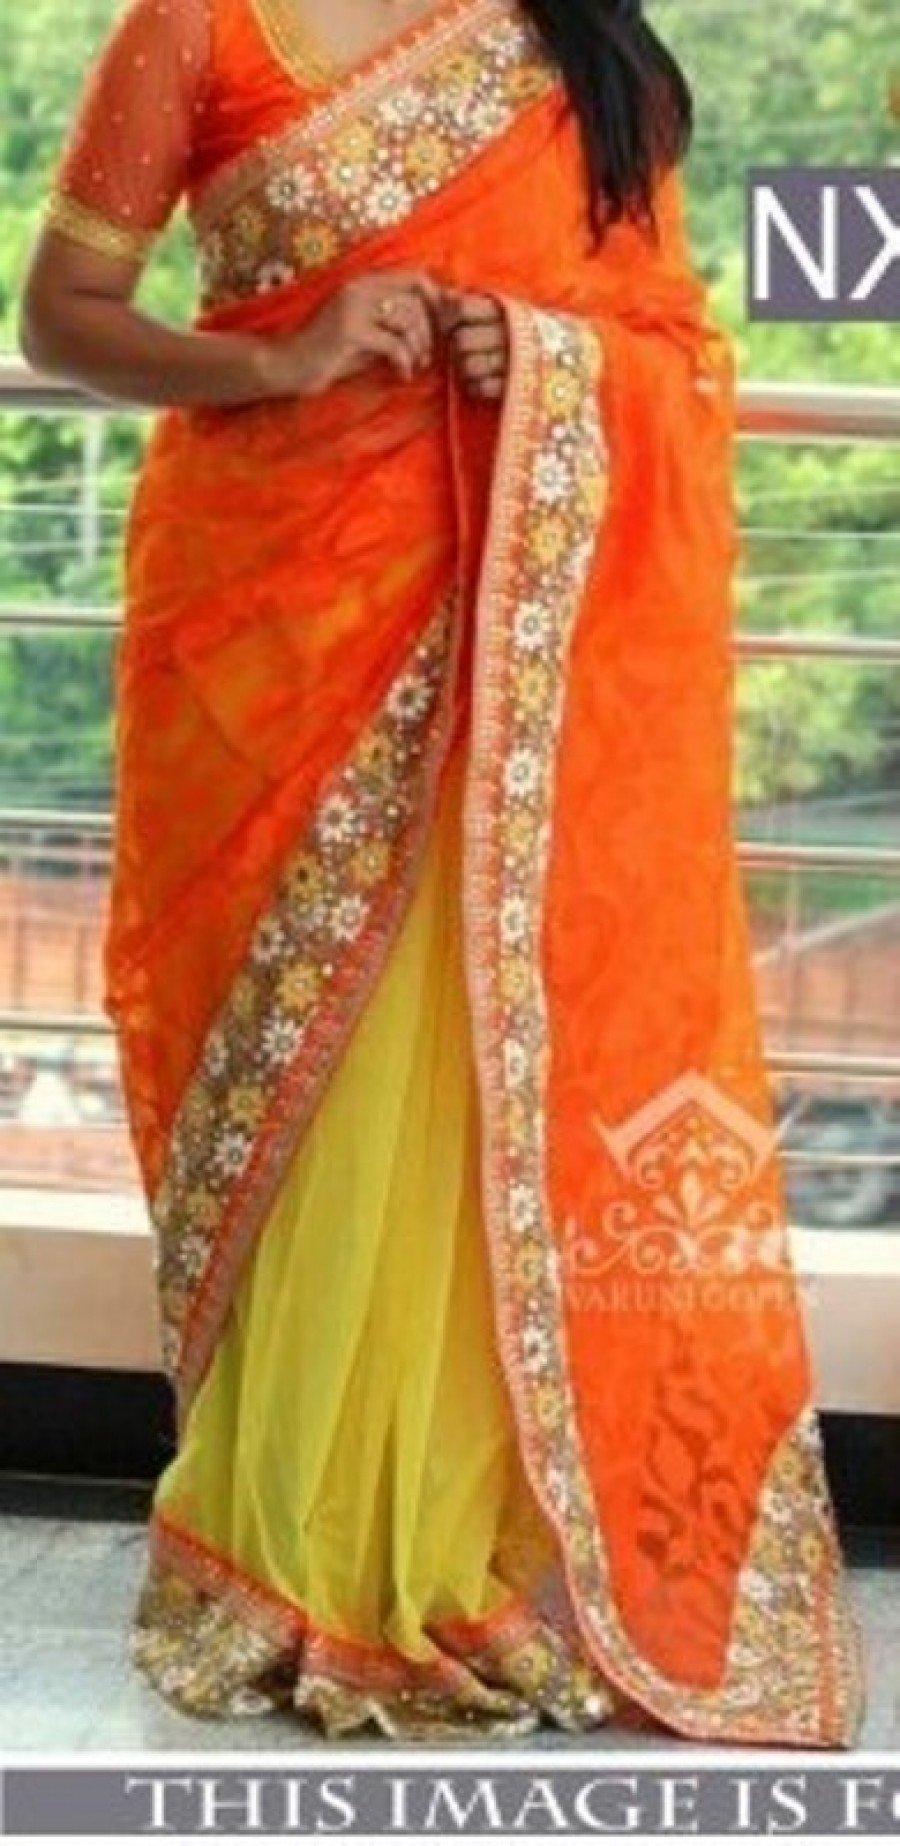 Buy Rozdeal New Orange and Yellow Barso Gerogette Designer Saree Online